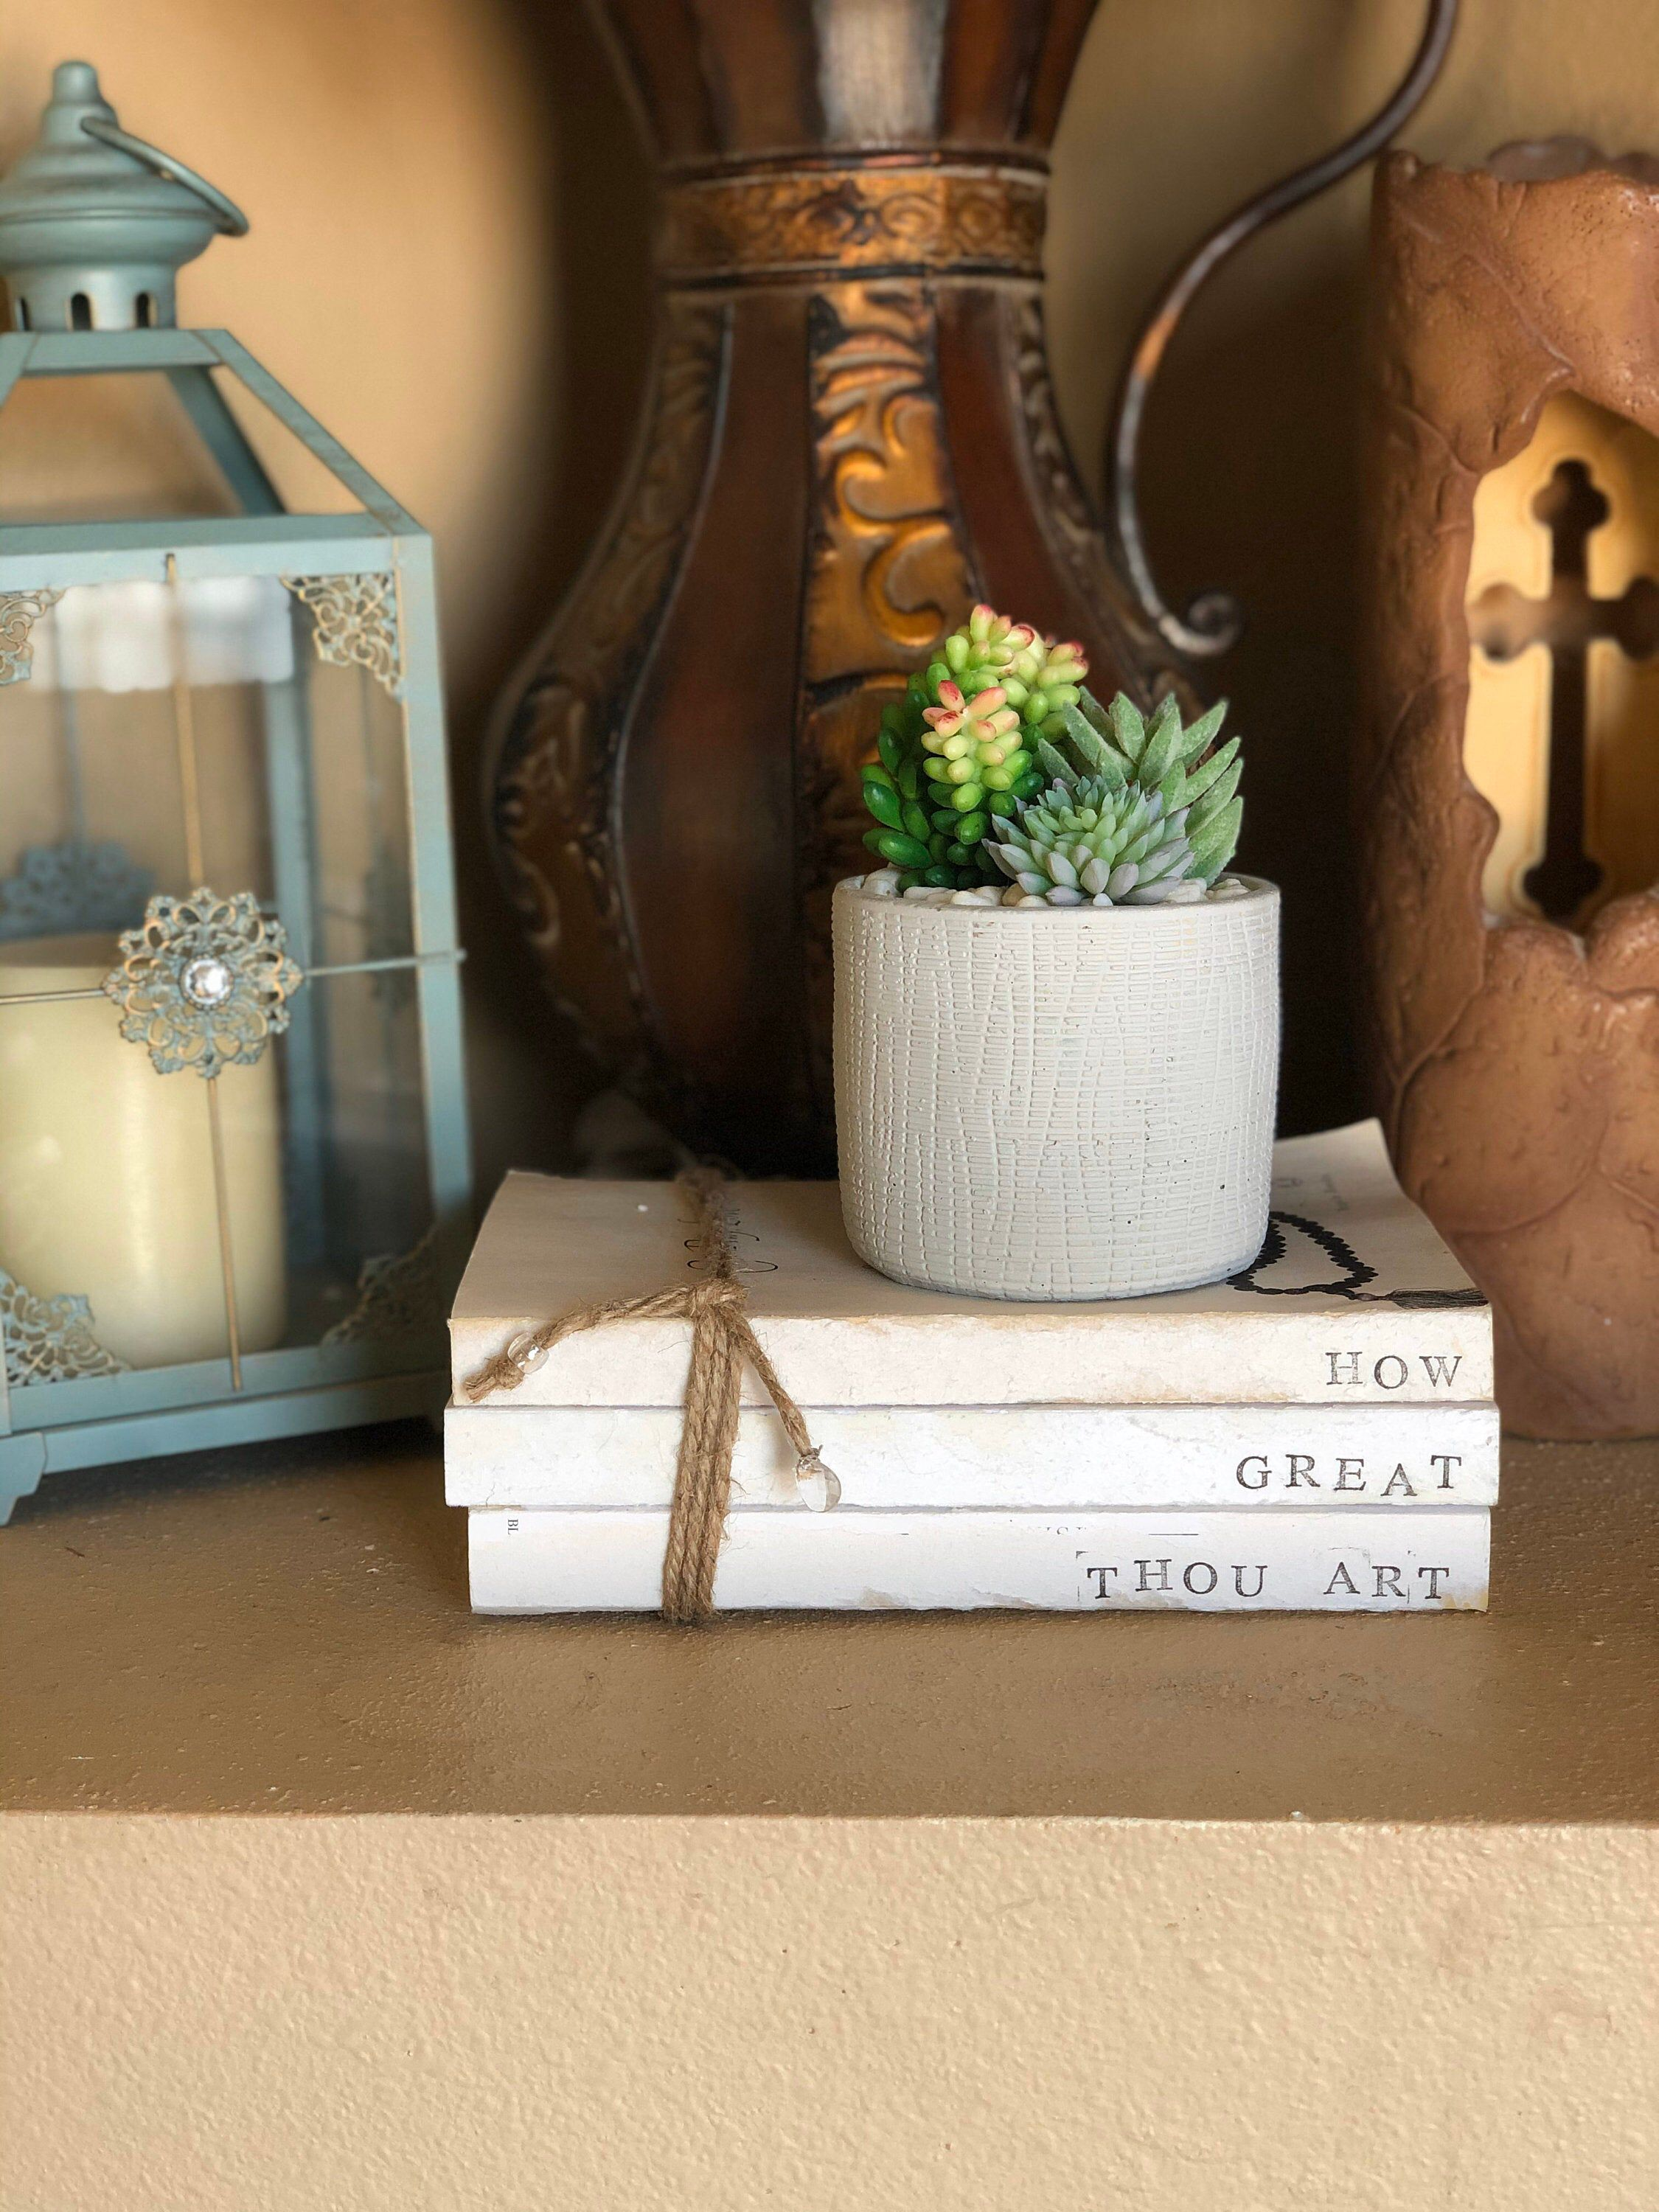 Excited to share my Farmhouse Decorative Stamped Book Bundles/Christian Book Bundles. They are $26 #farmhousedecor #vintagebarn_nd